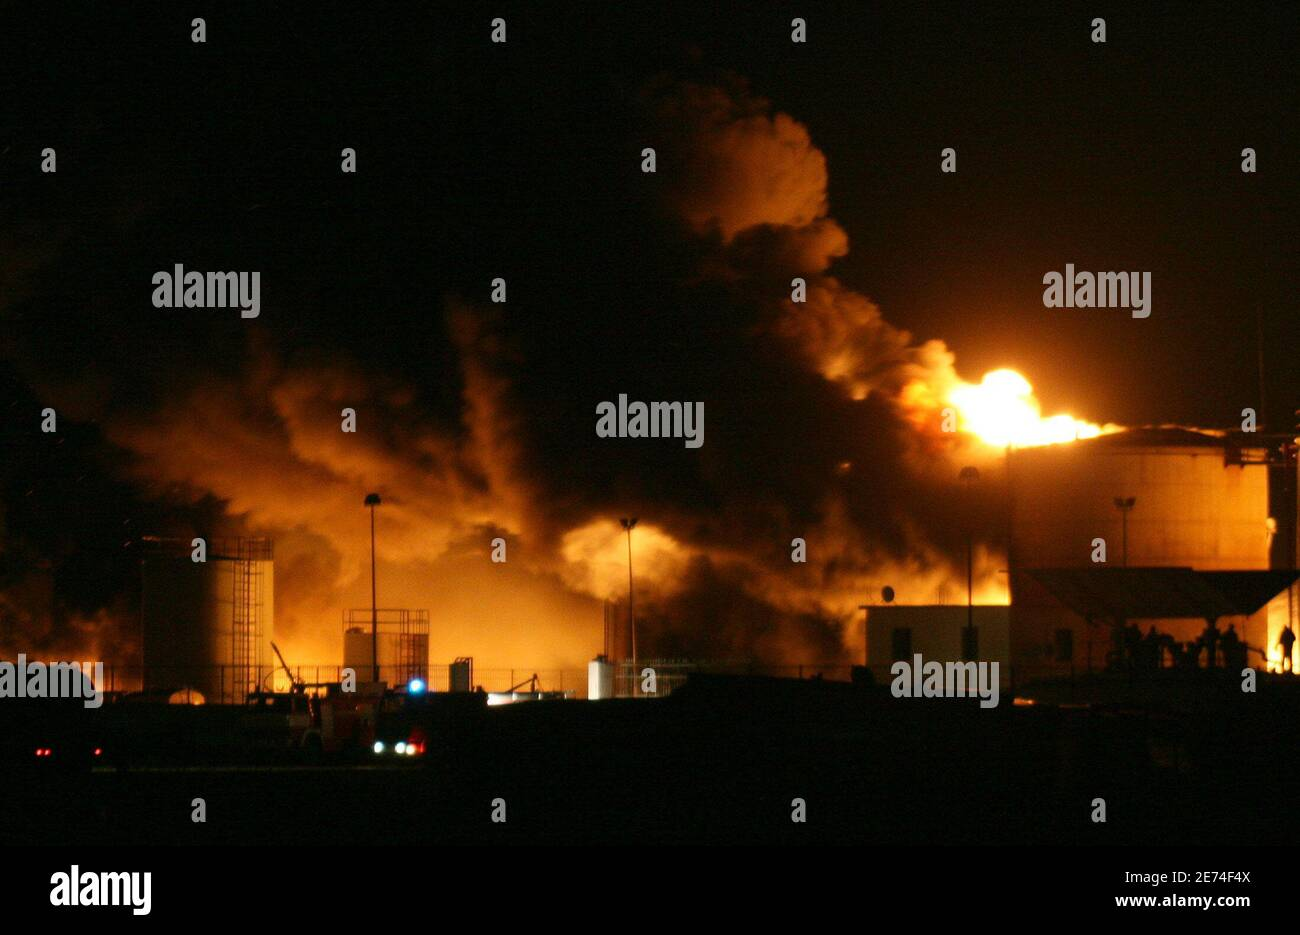 Albanian firefighters try to contain a fire at a fuel depot in the port city of Shengjin, some 70 km (44 miles) northwest of the capital Tirana, December 17, 2006. Firefighters worked all Sunday using retardant foam water and sand to prevent the fire from spreading to two bigger depots.   REUTERS/Arben Celi Stock Photo